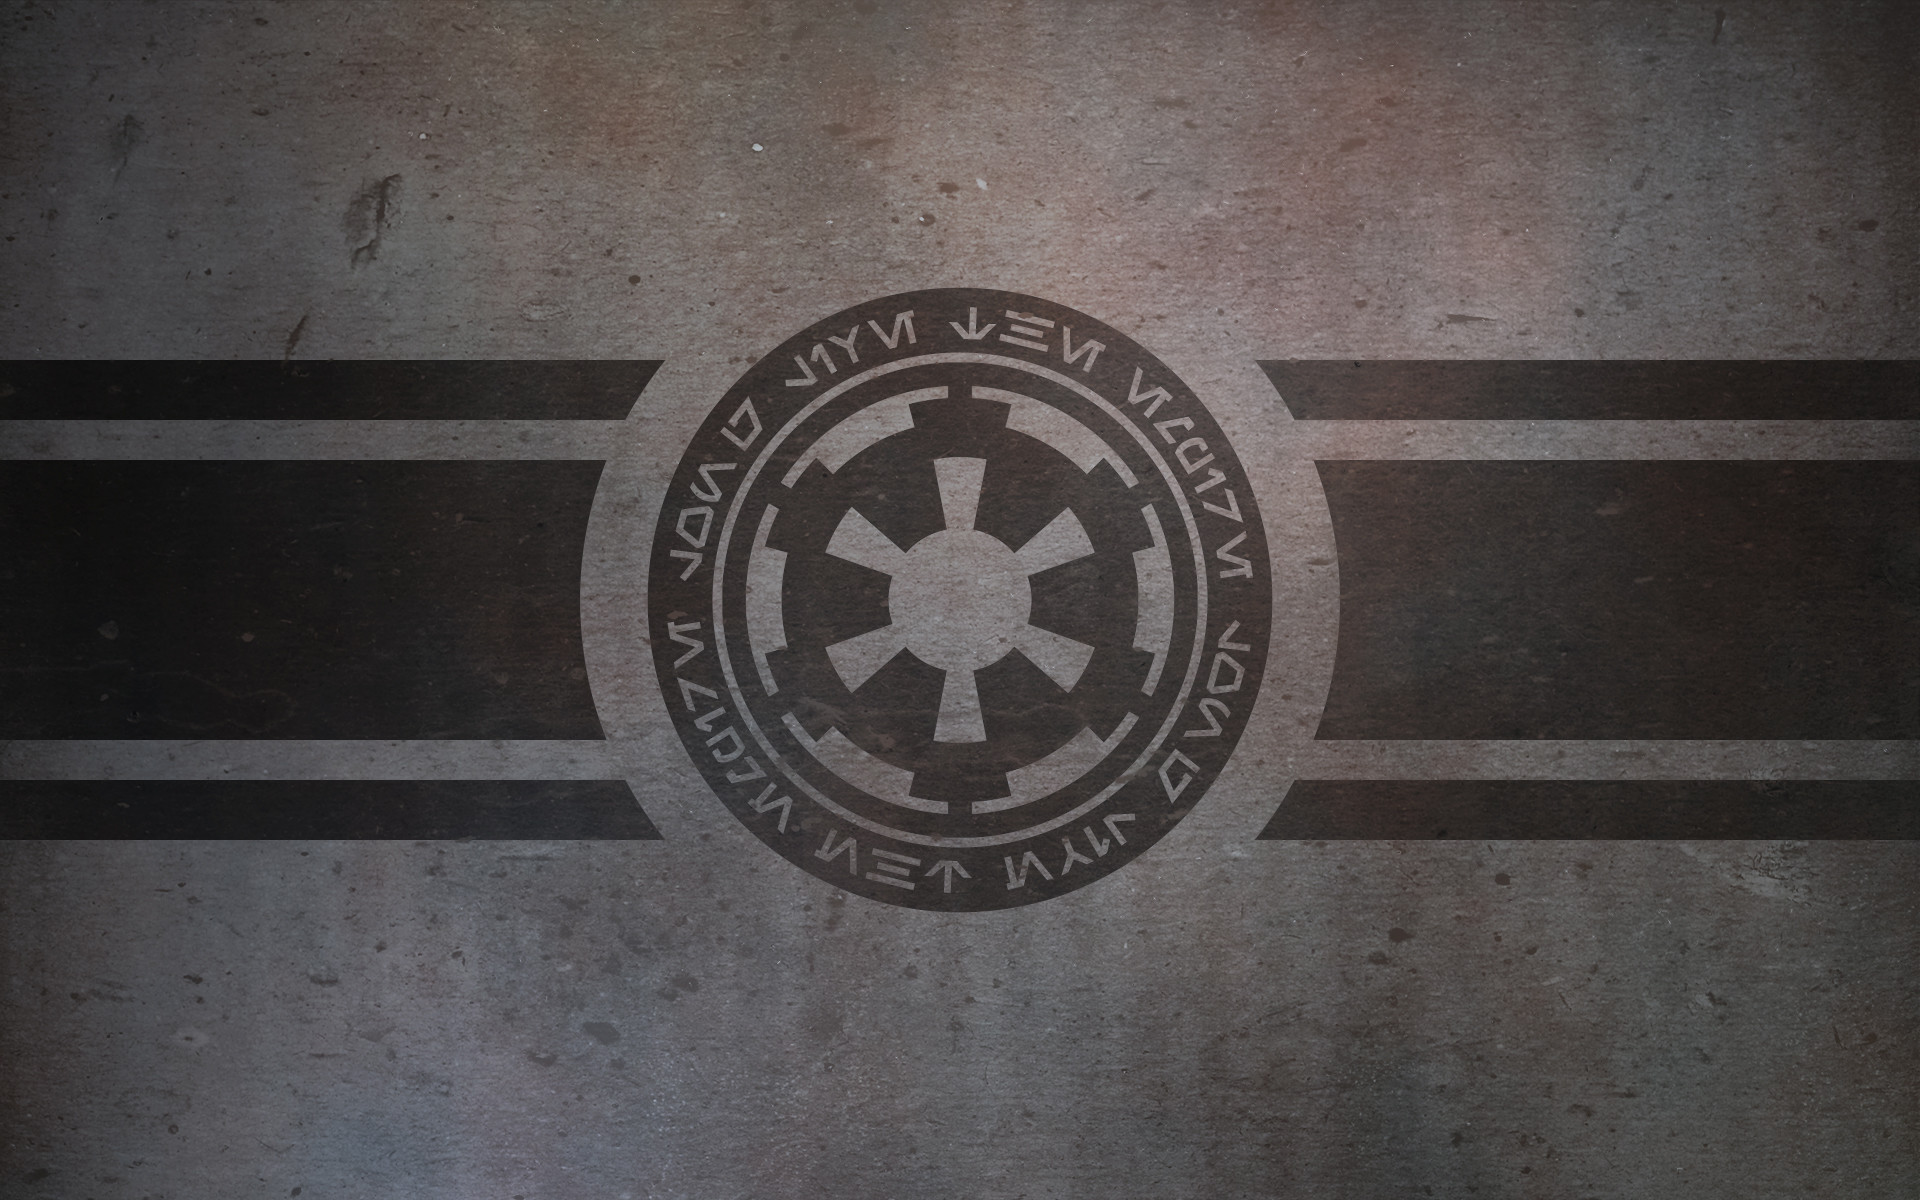 The Galactic Empire (Wallpaper) image – Le Fancy Wallpapers – Mod DB